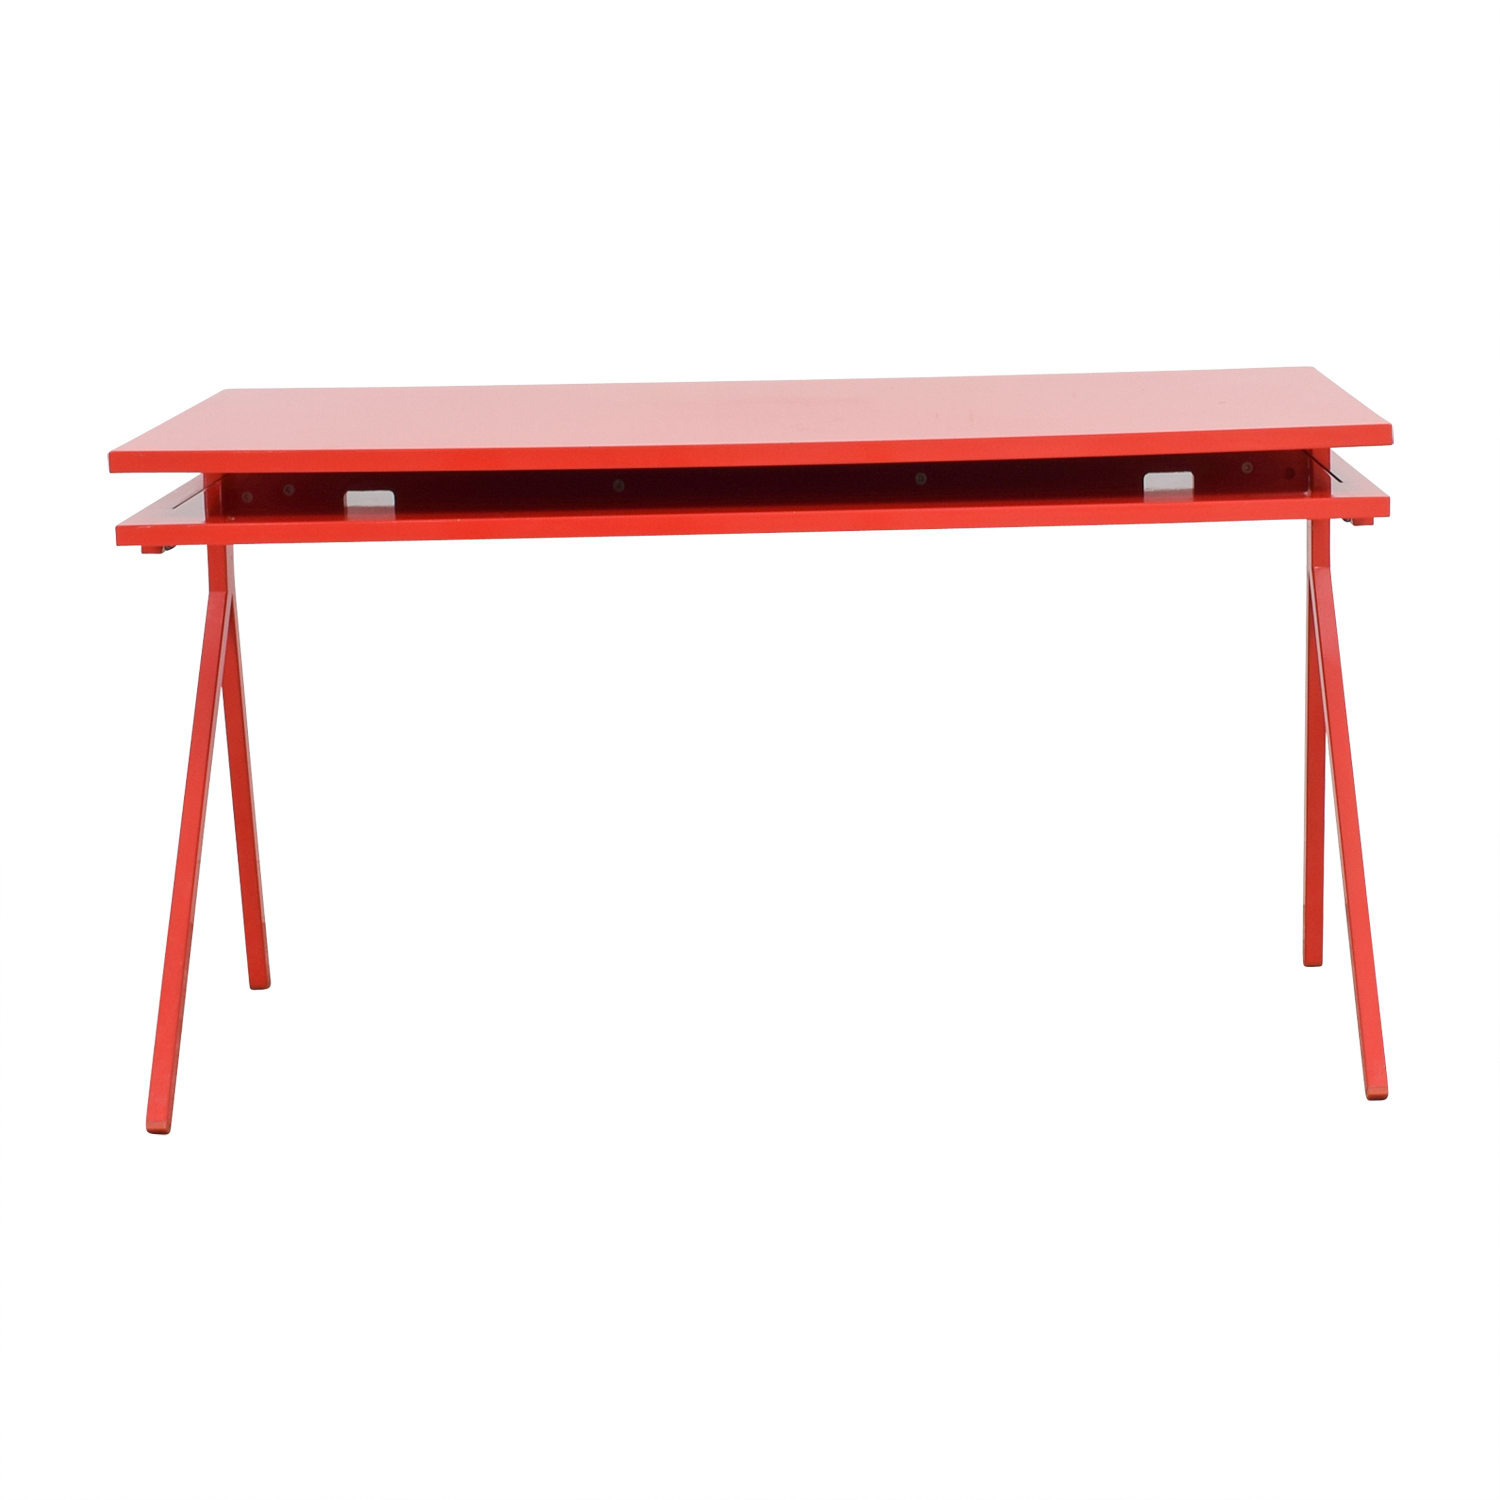 Blu Dot Blu Dot 51 Red Desk price